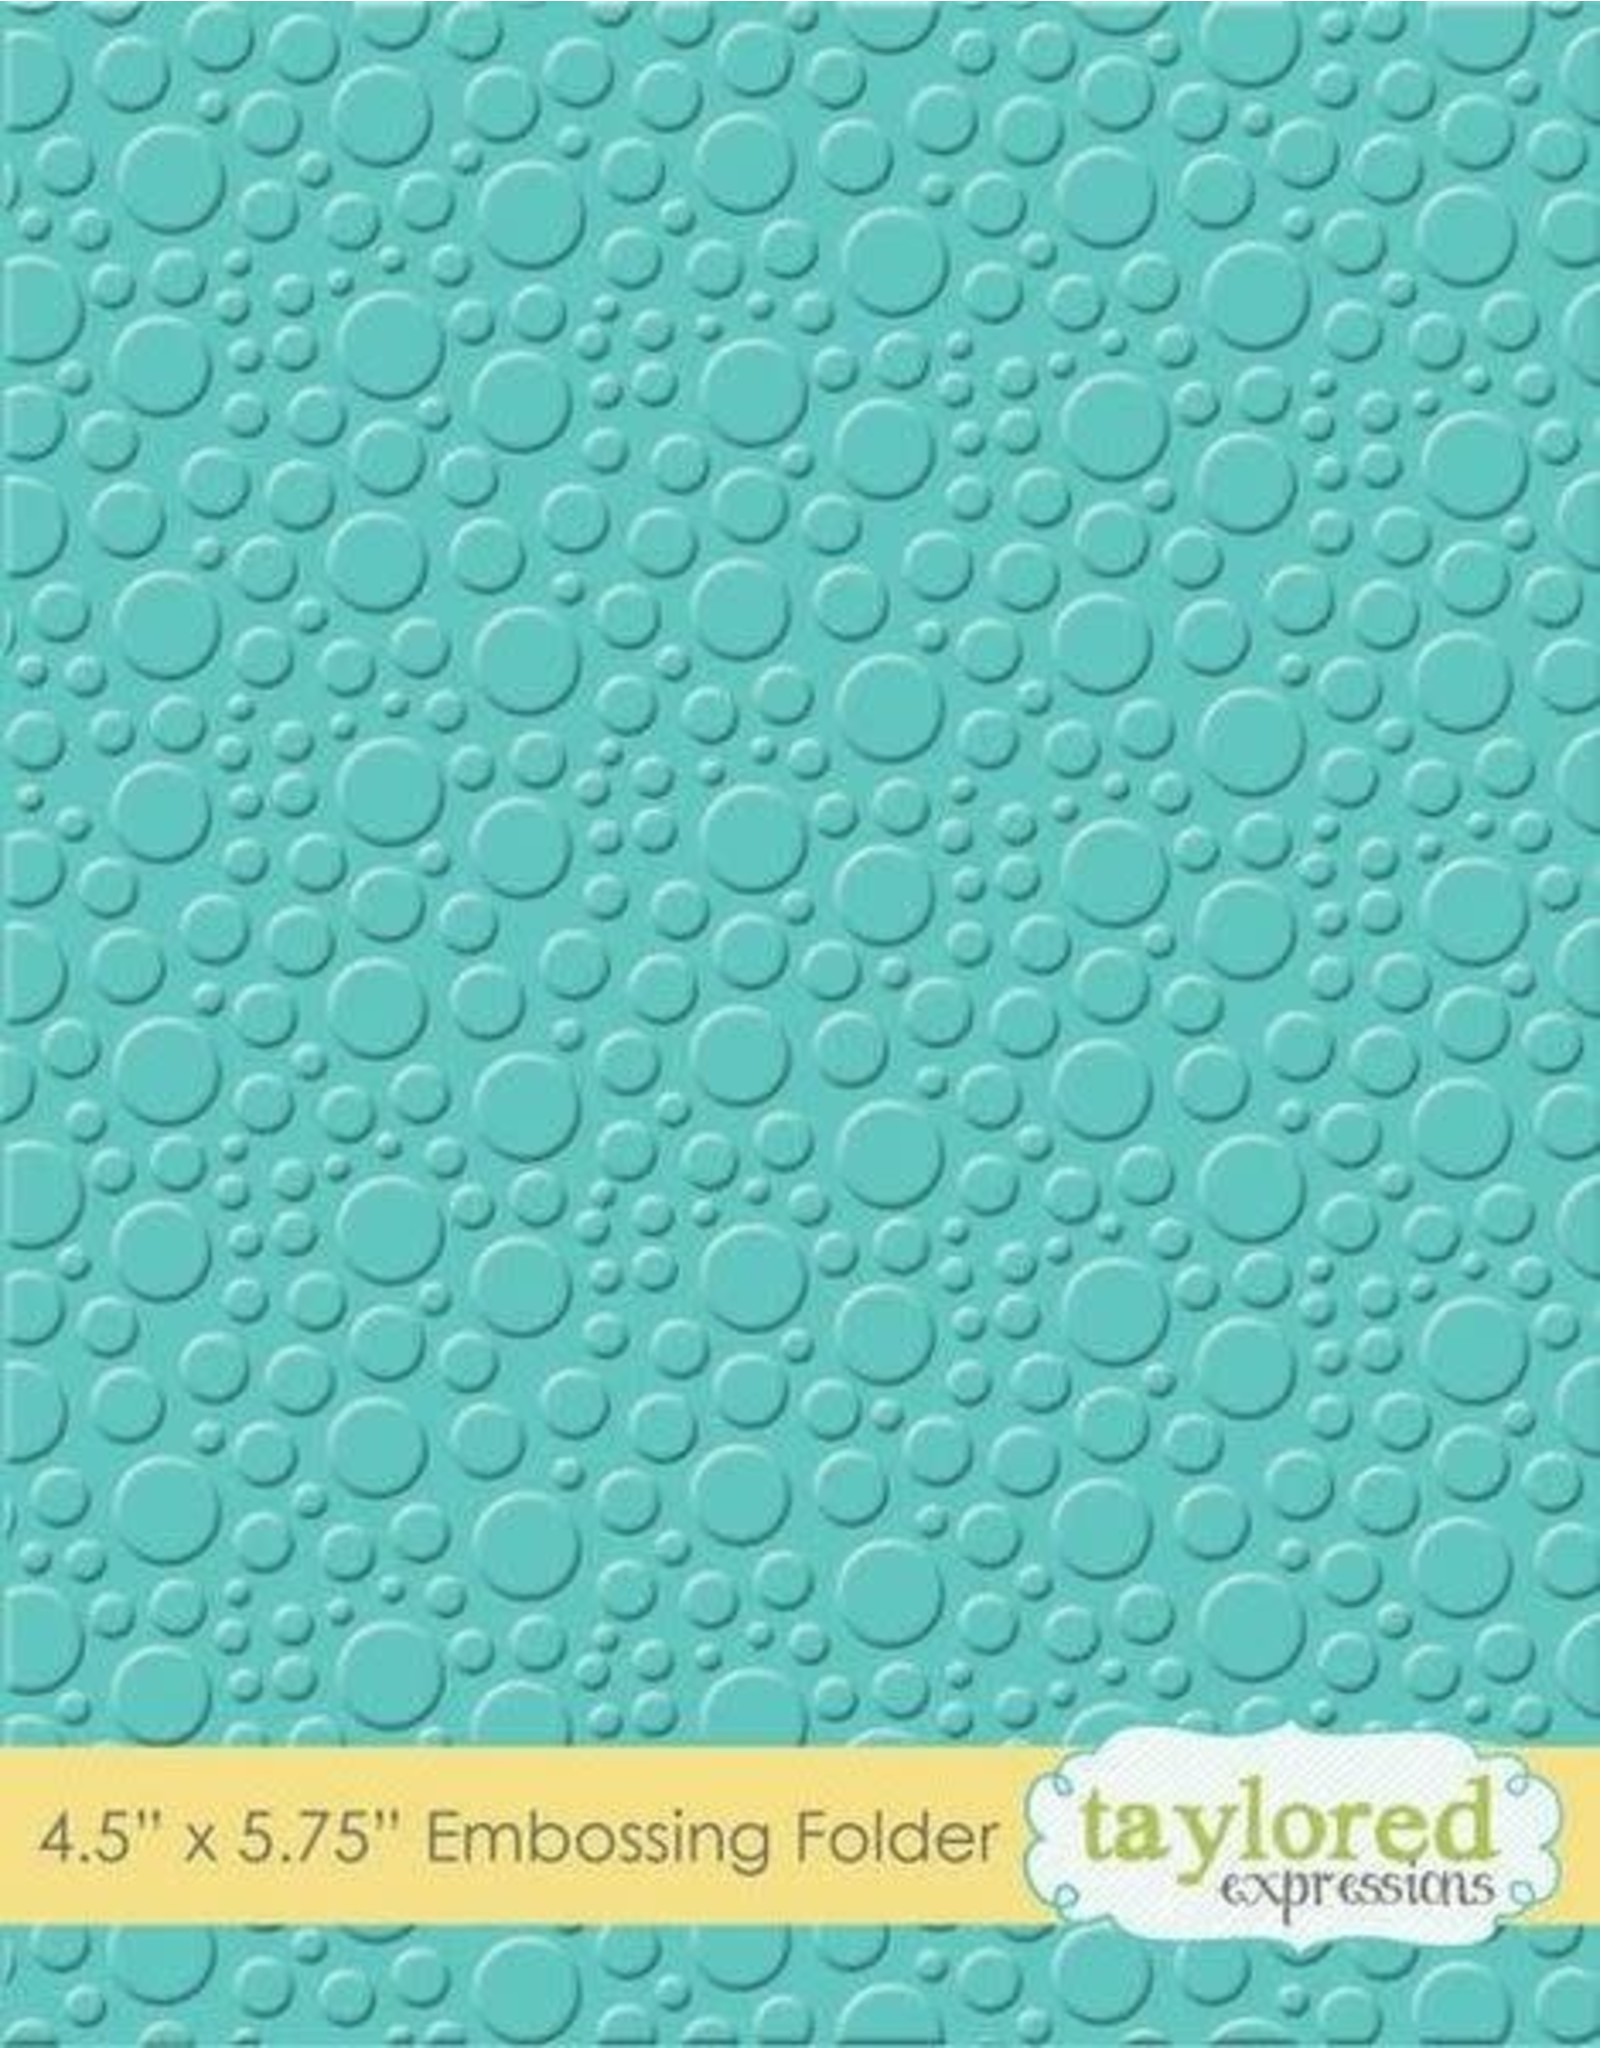 Taylored Expressions Bubbles - Embossing Folder